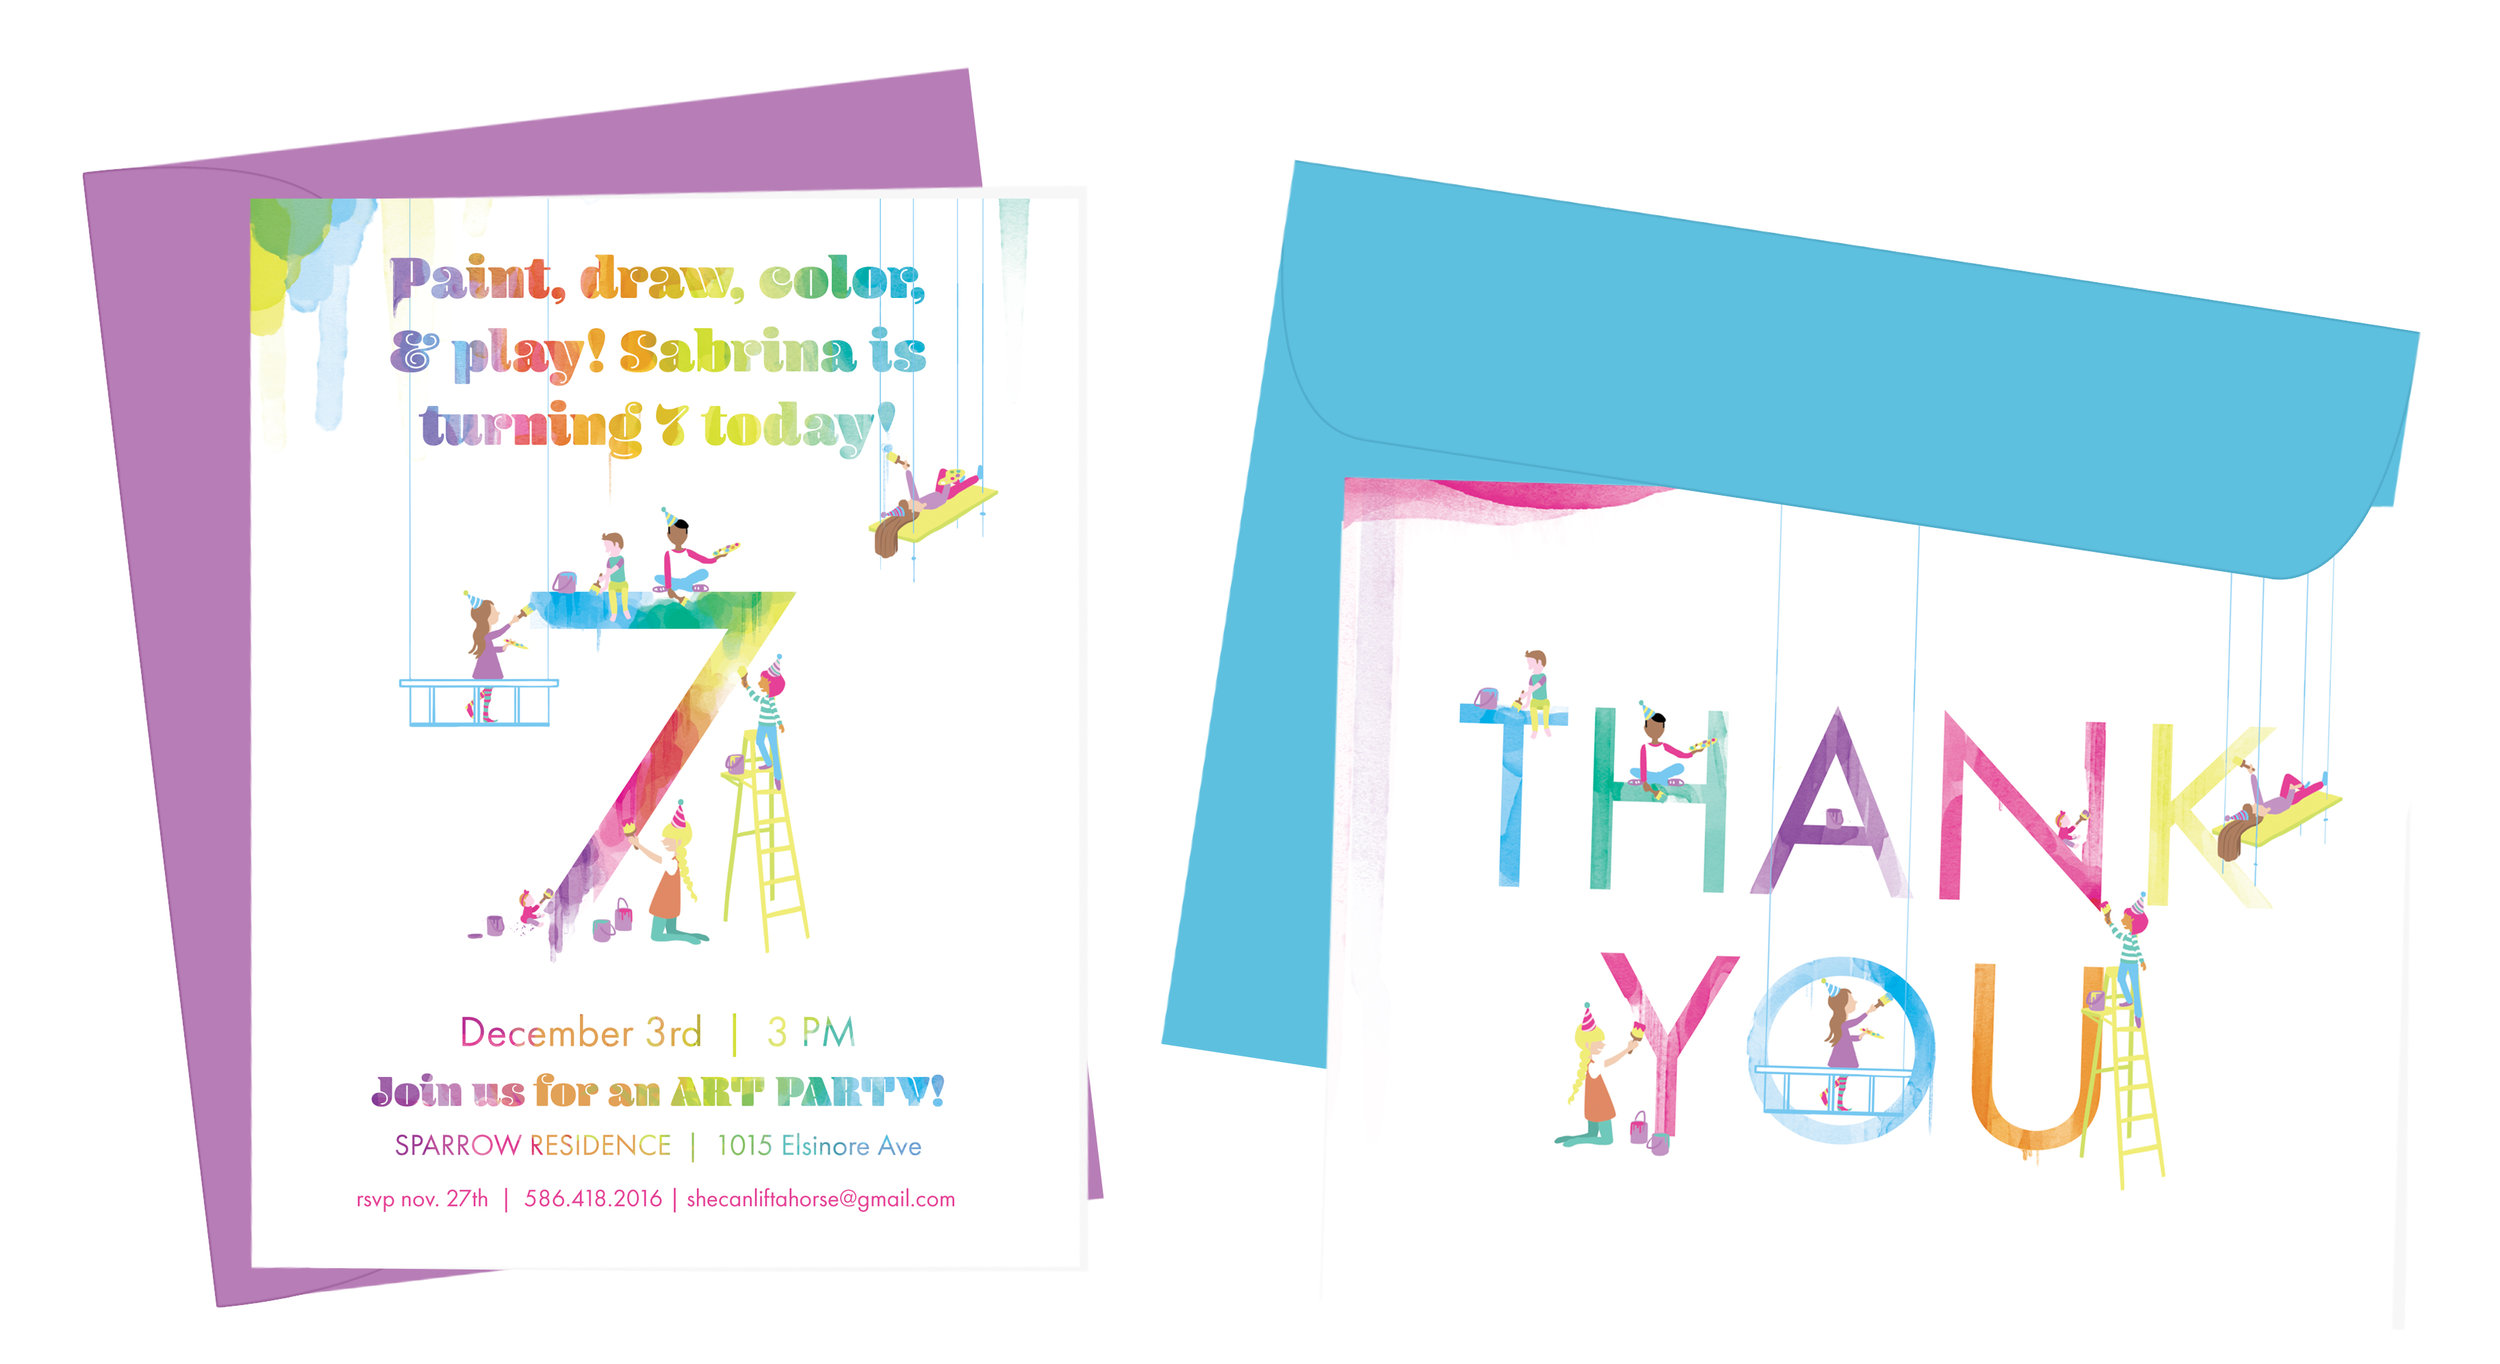 Art Party  | birthday invitations and thank you cards   A colorful invitation to an art-themed painting party. Some of the actual party goers (including the birthday girl and her little brother) were drawn. |  professionally offset printed